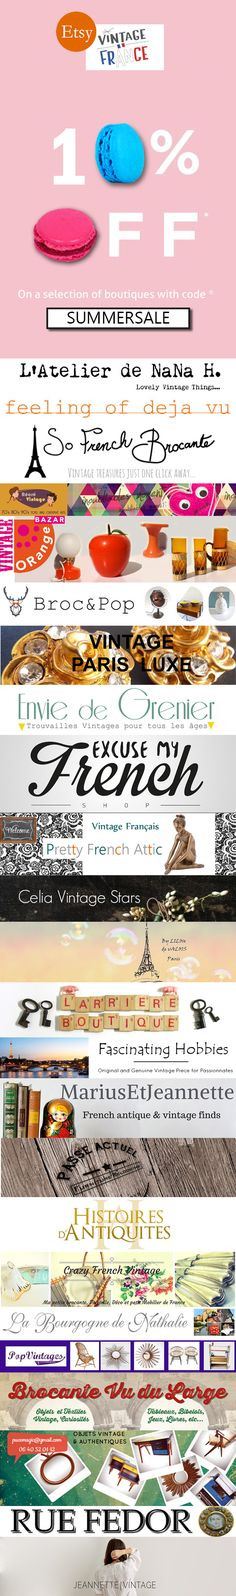 SUMMER SALE! Enjoy 10% off your purchases at So French Brocante and all participating stores, with coupon code: SUMMERSALE. (Click to see complete list).